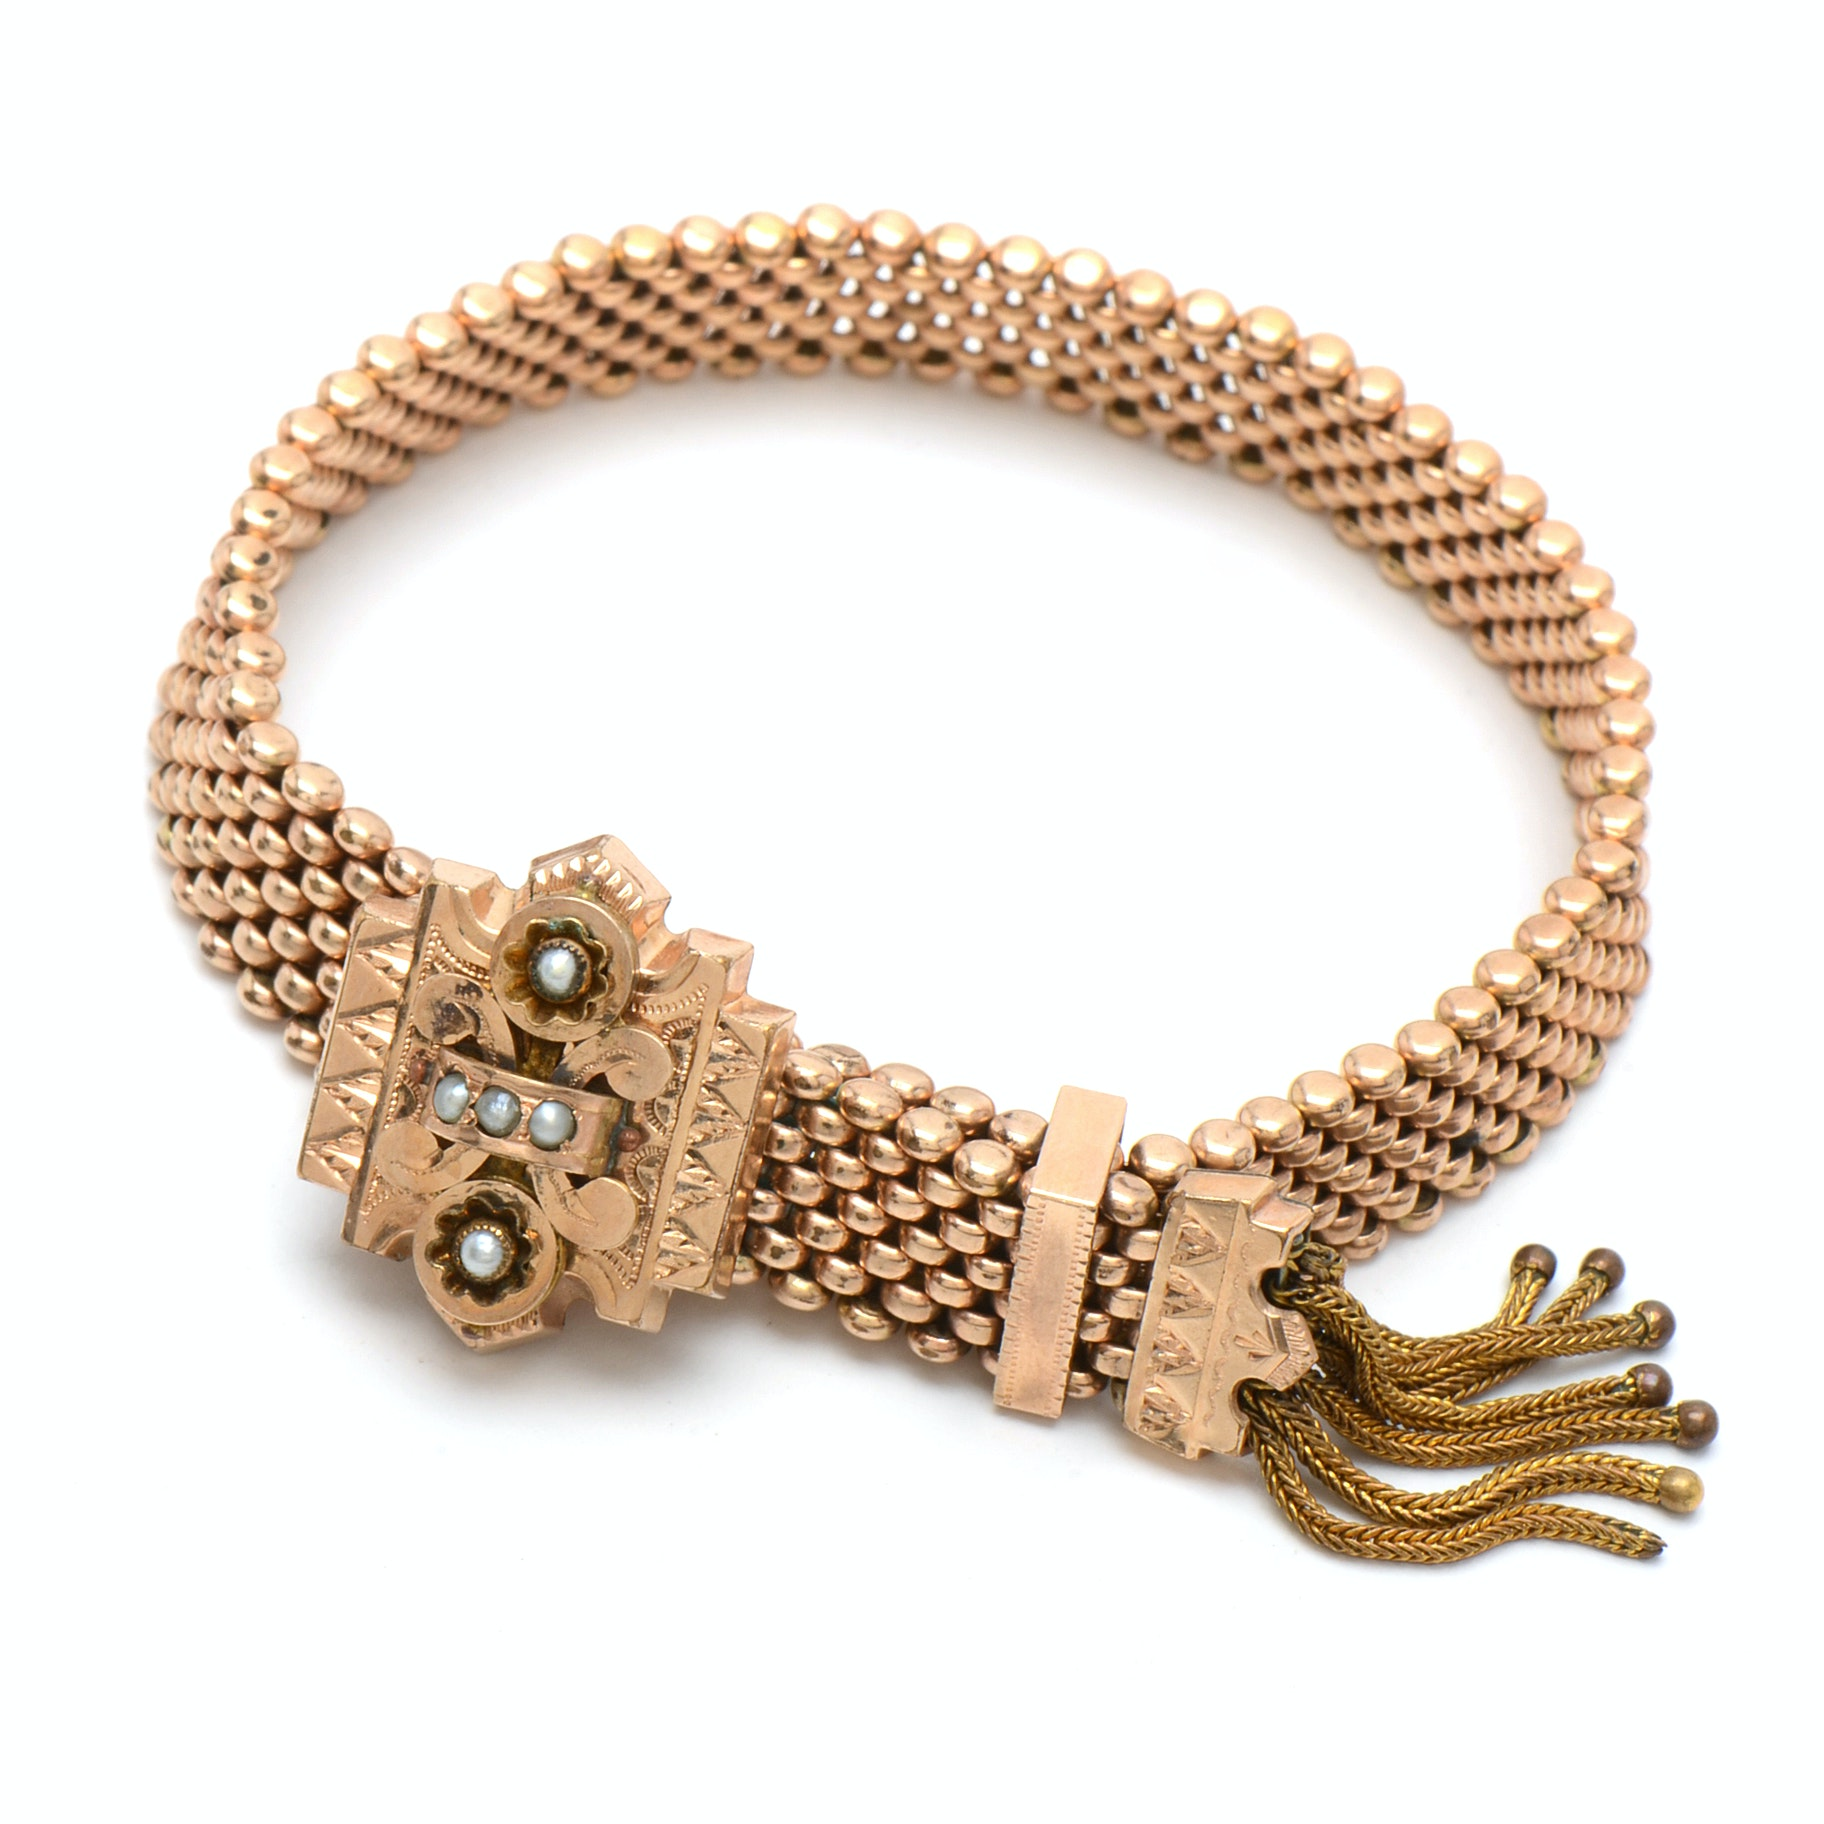 Victorian Gold Tone Slide Mesh Bracelet with Seed Pearls and Tassel End